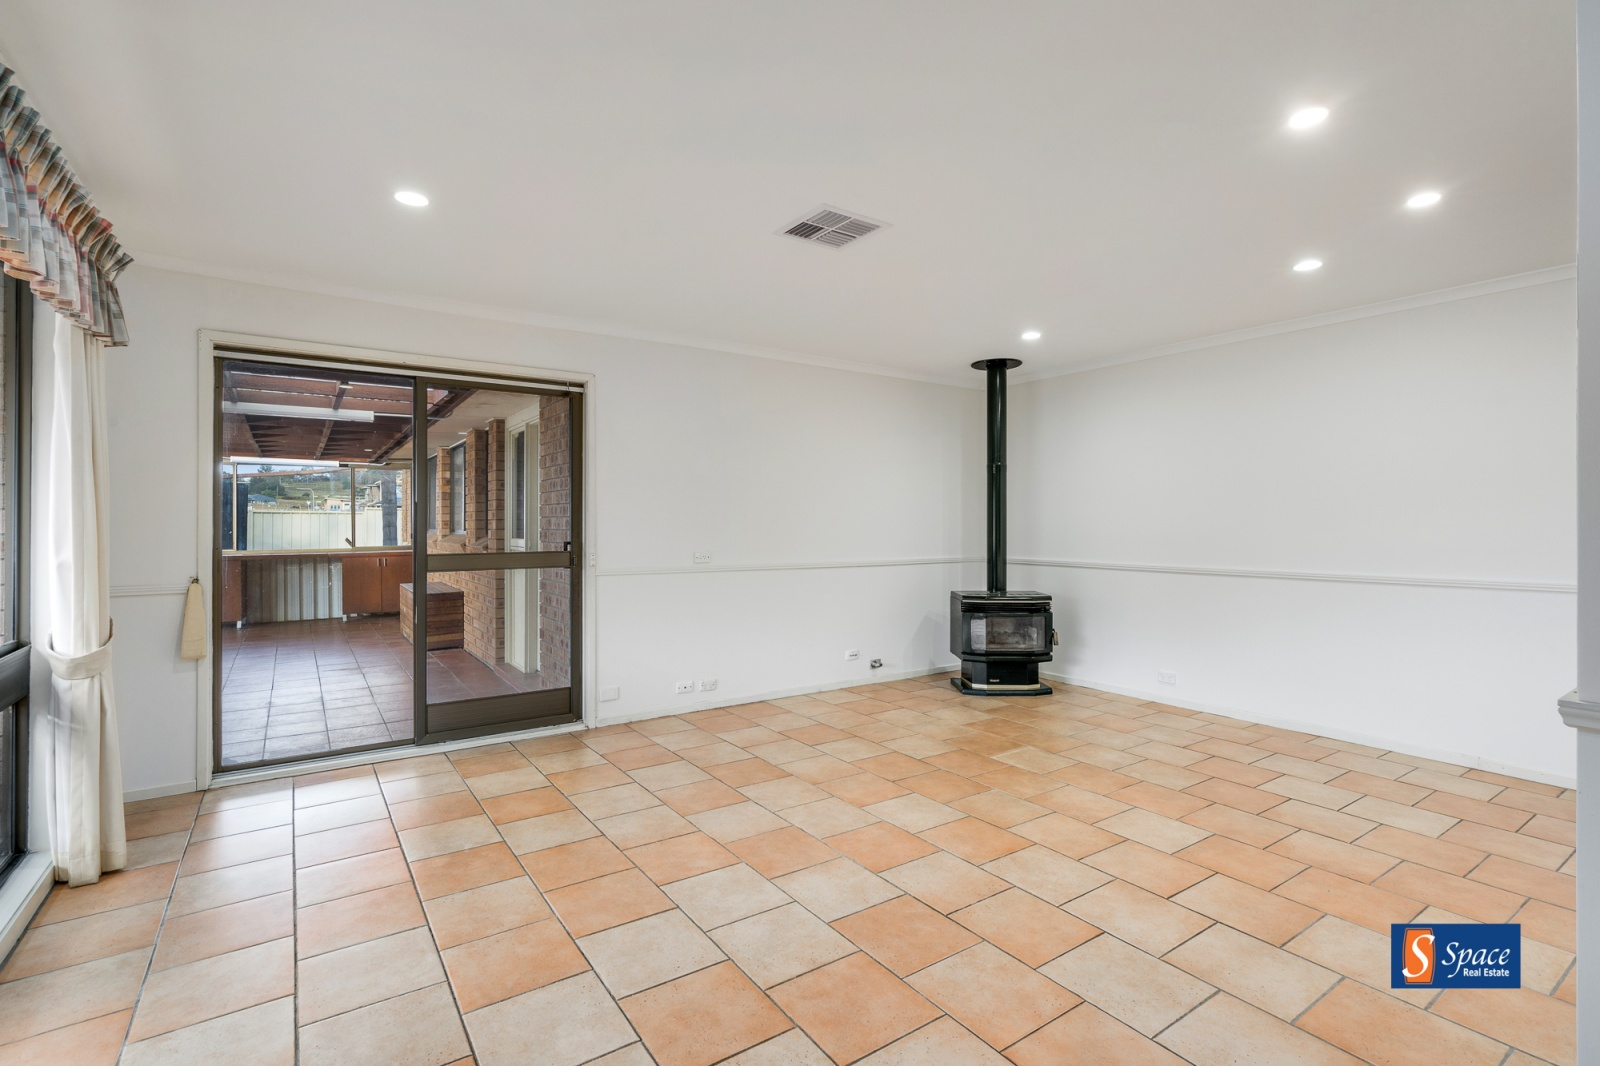 73 Turner Road,Gregory Hills,NSW,4 Bedrooms Bedrooms,2 BathroomsBathrooms,House,Turner Road,1419